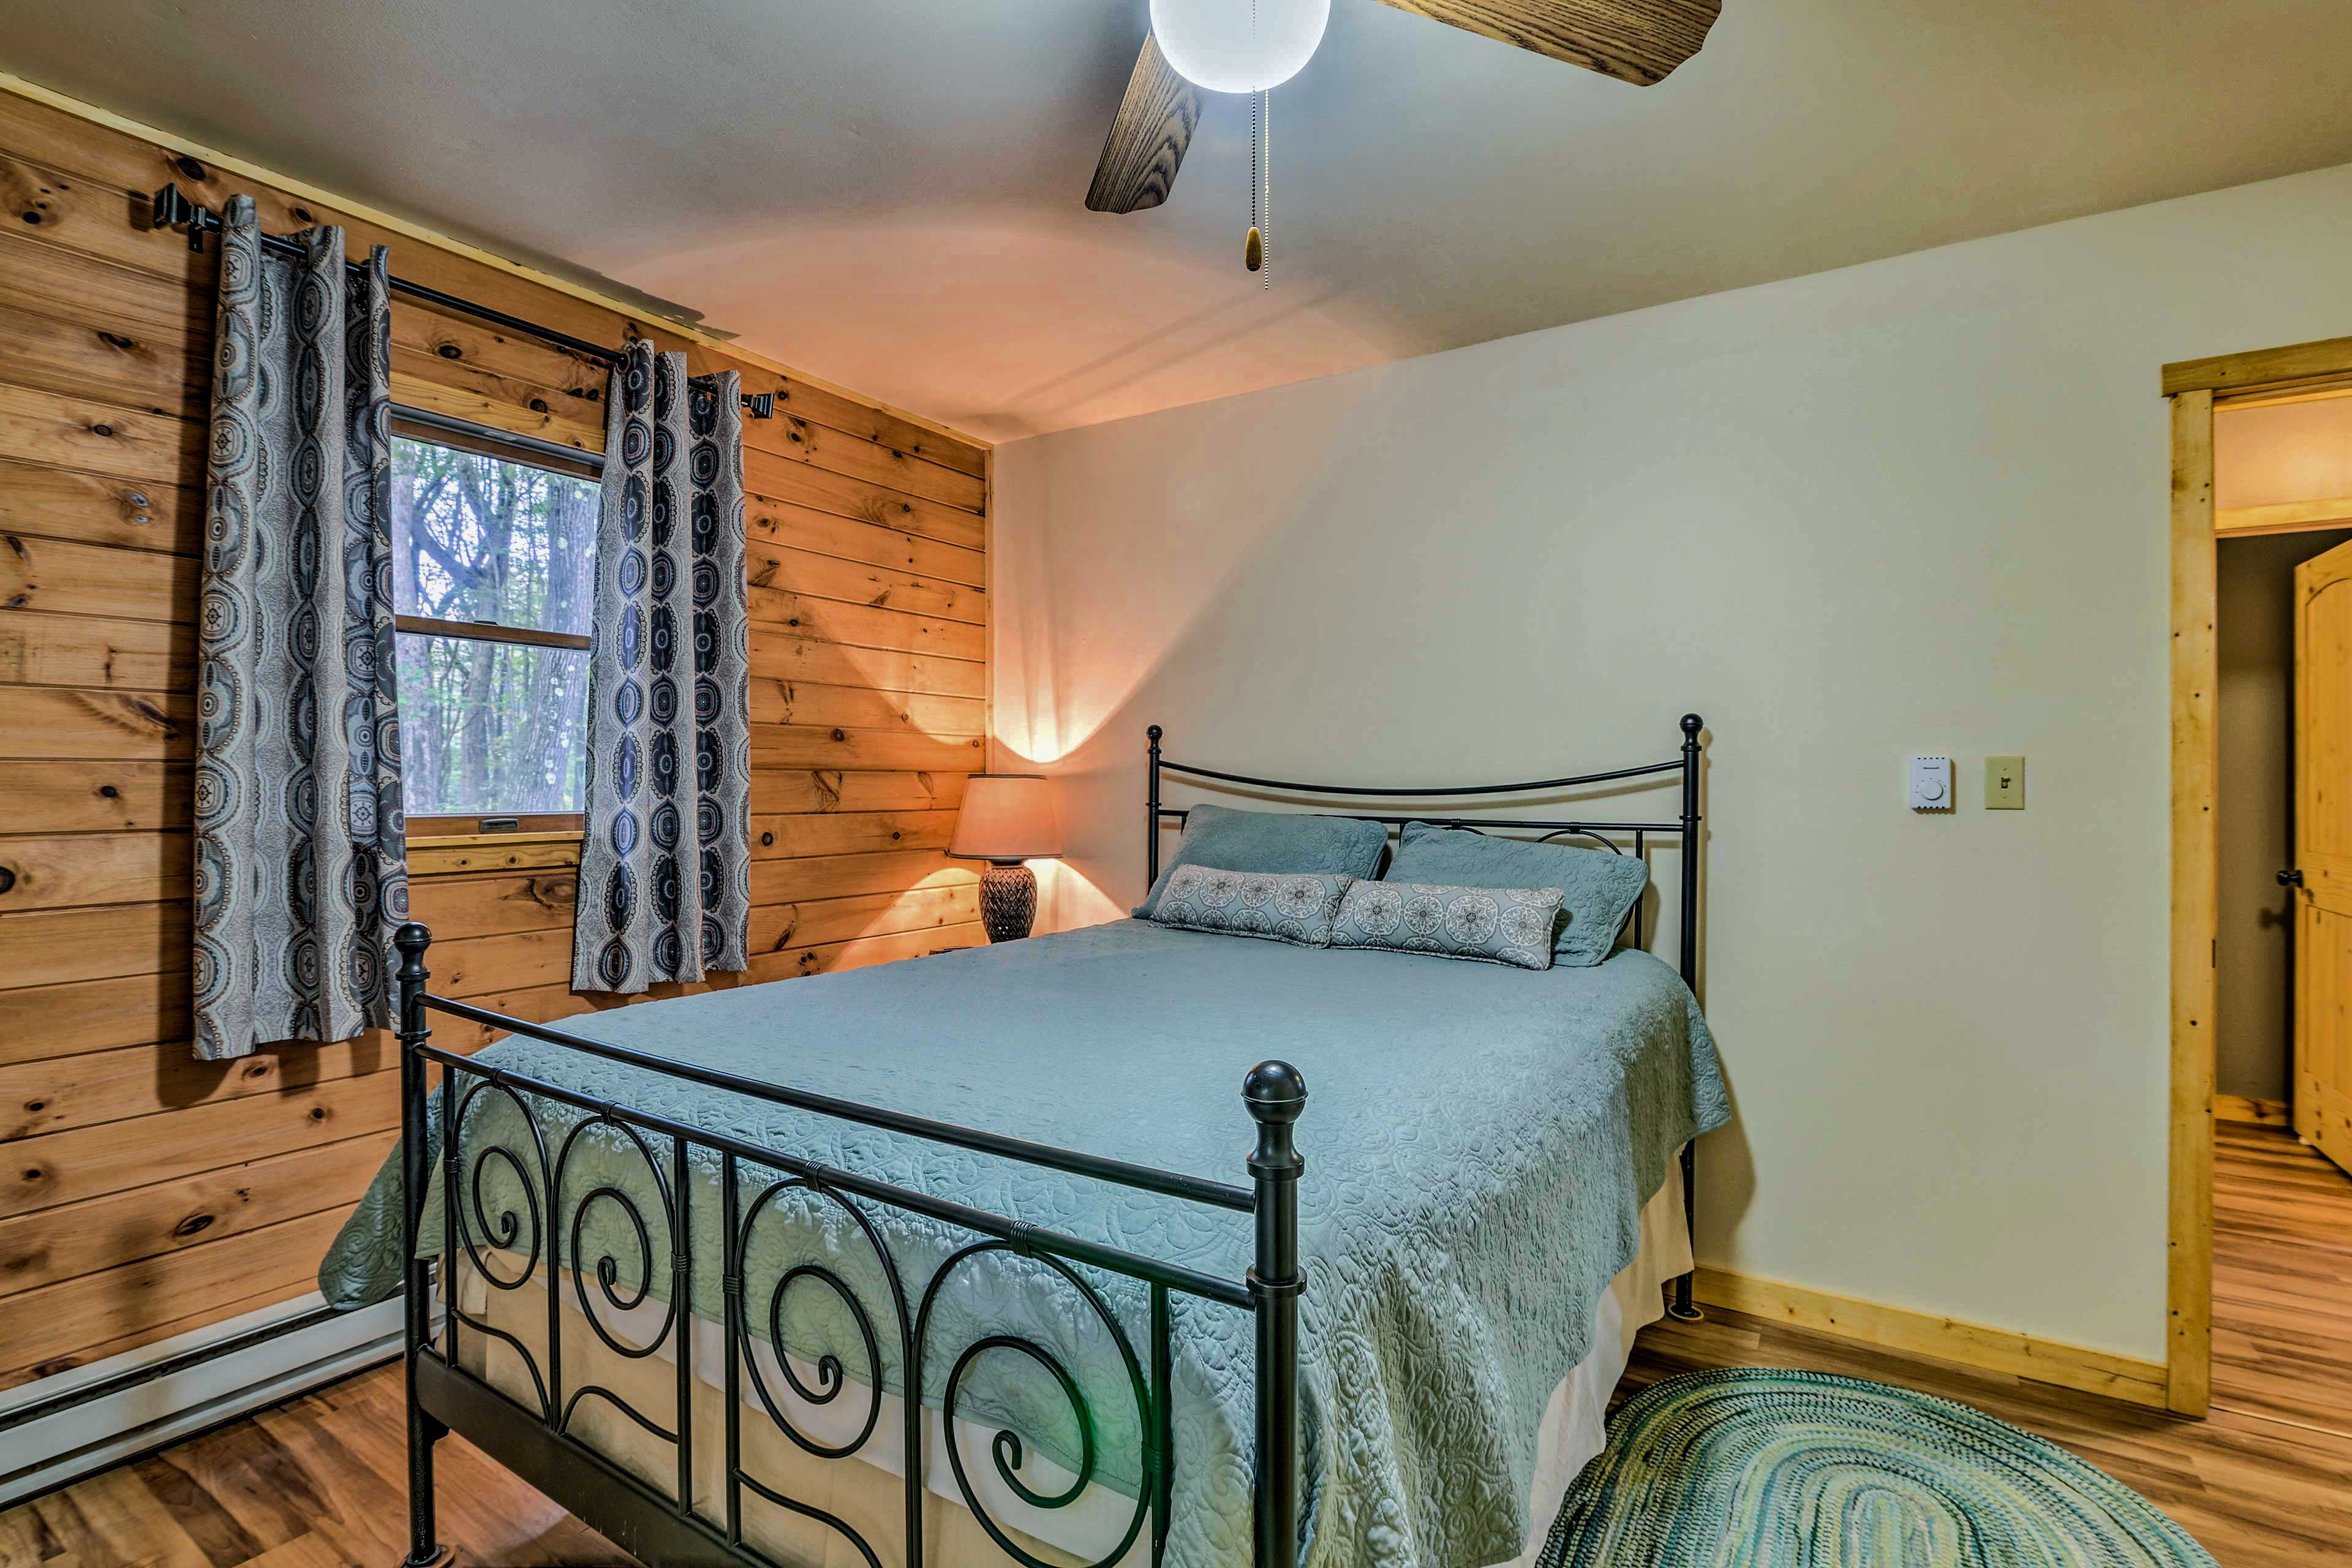 The second room is outfitted with a queen-sized bed.